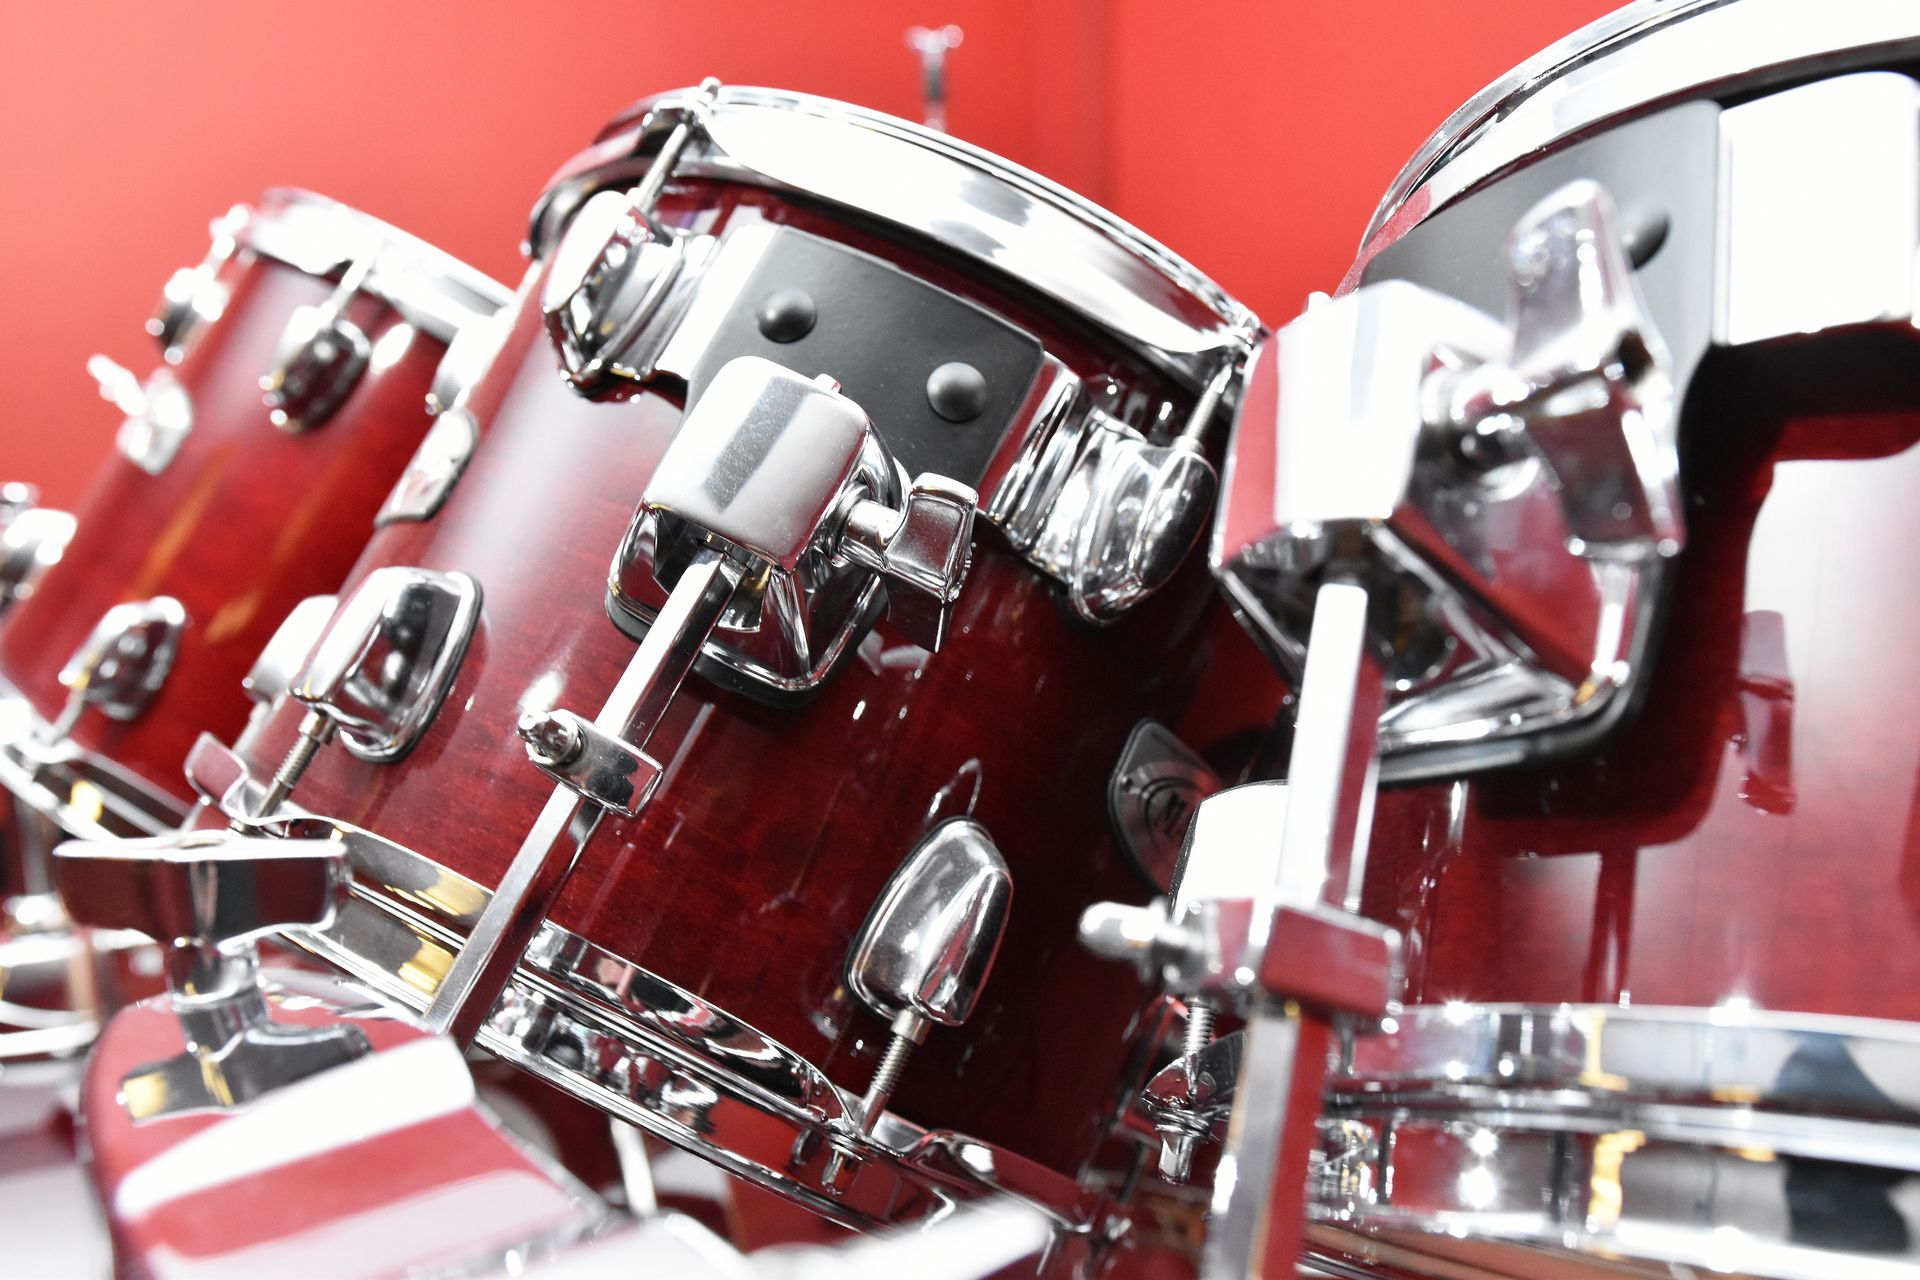 Mapex 9-piece drum kit for sale at Plasma Music